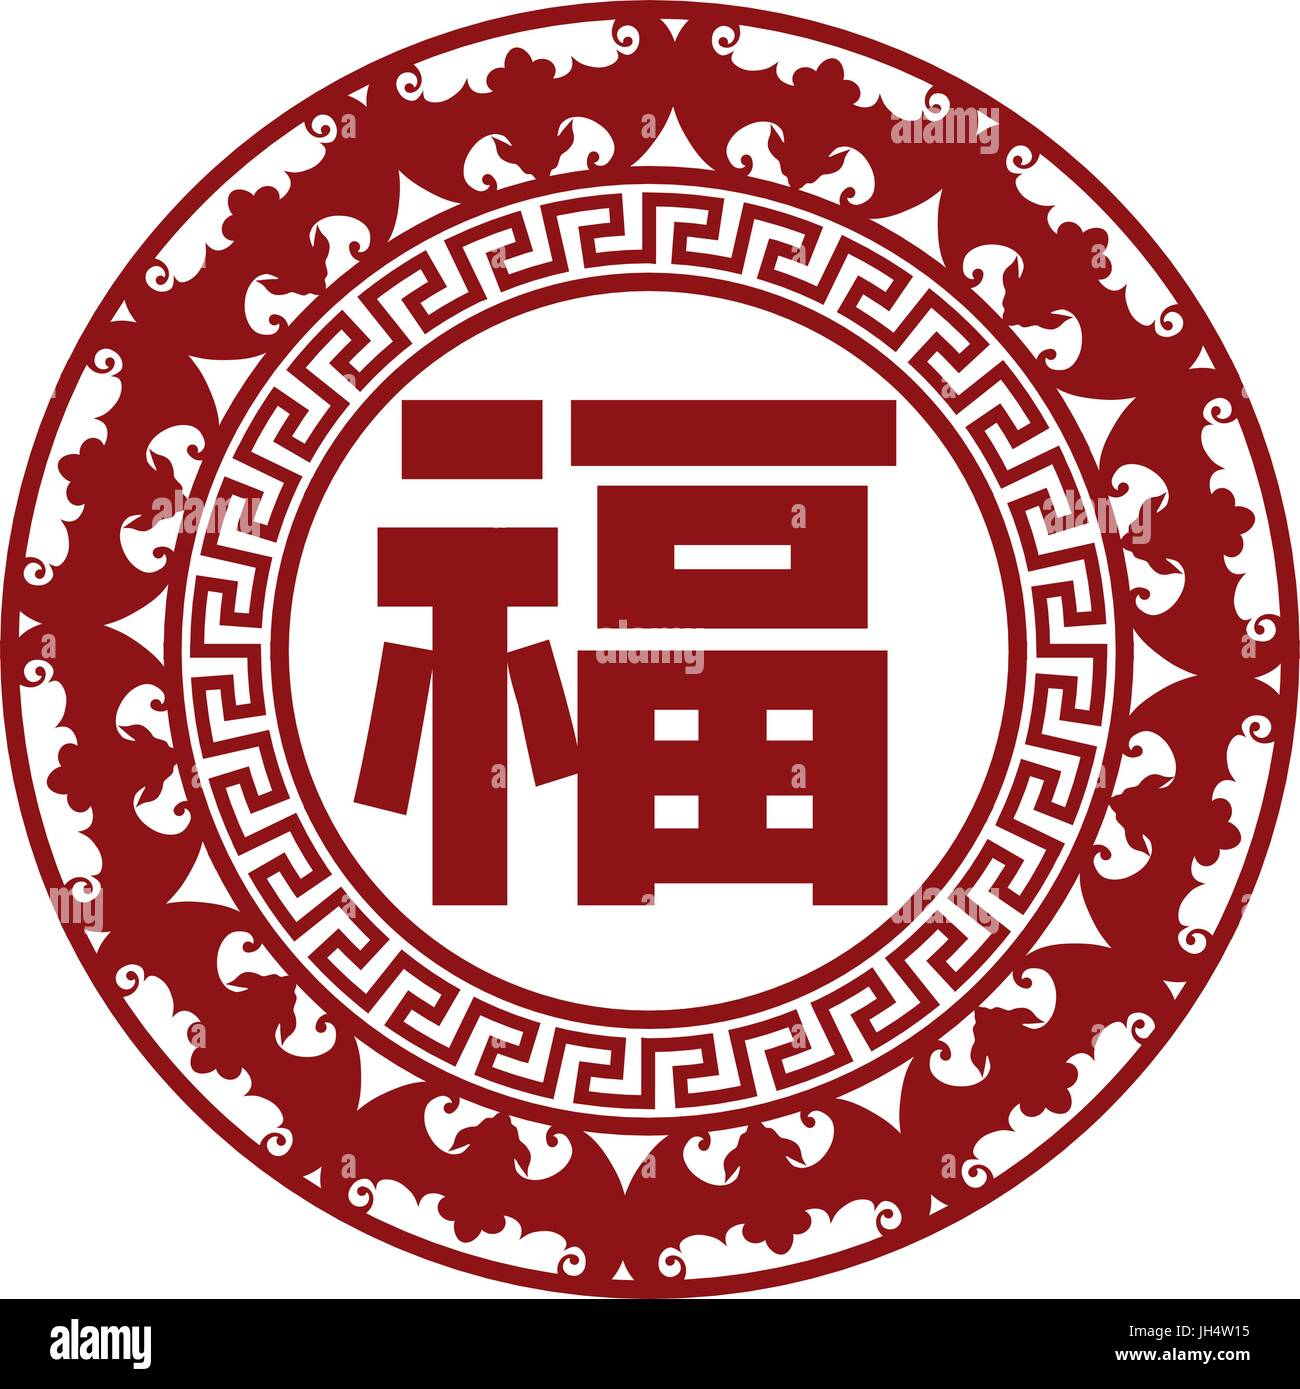 Chinese good fortune fu text symbol with abstract bats in circle chinese good fortune fu text symbol with abstract bats in circle border in auspicious red illustration buycottarizona